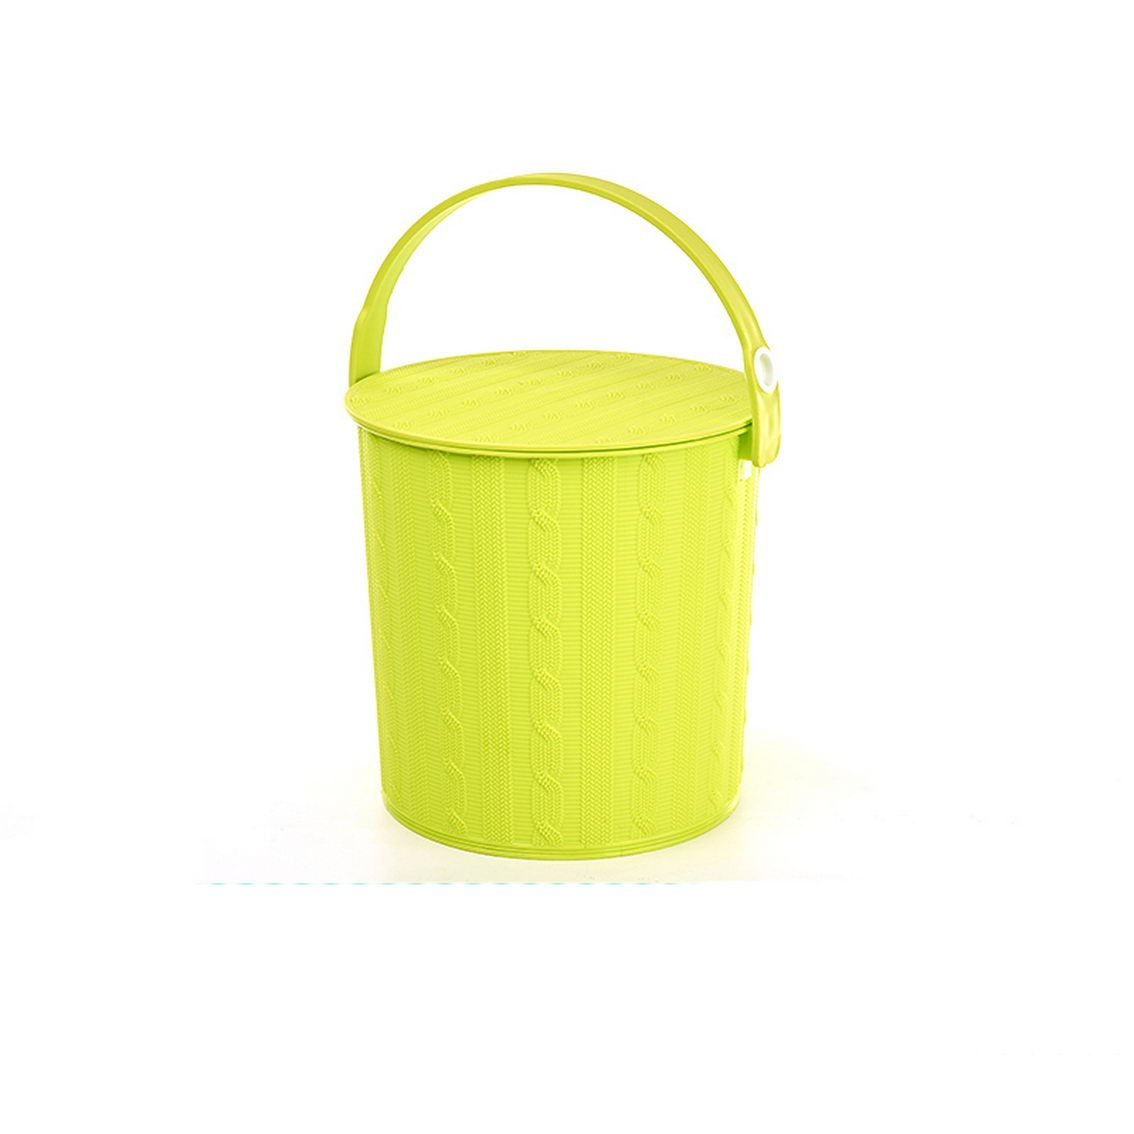 jii2030shann Mobile home buckets plastic barrels with cover small bucket thicker reservoir buckets laundry bucket build bucket round bucket fishing barrels plastic barrels tub bucket tub buckets